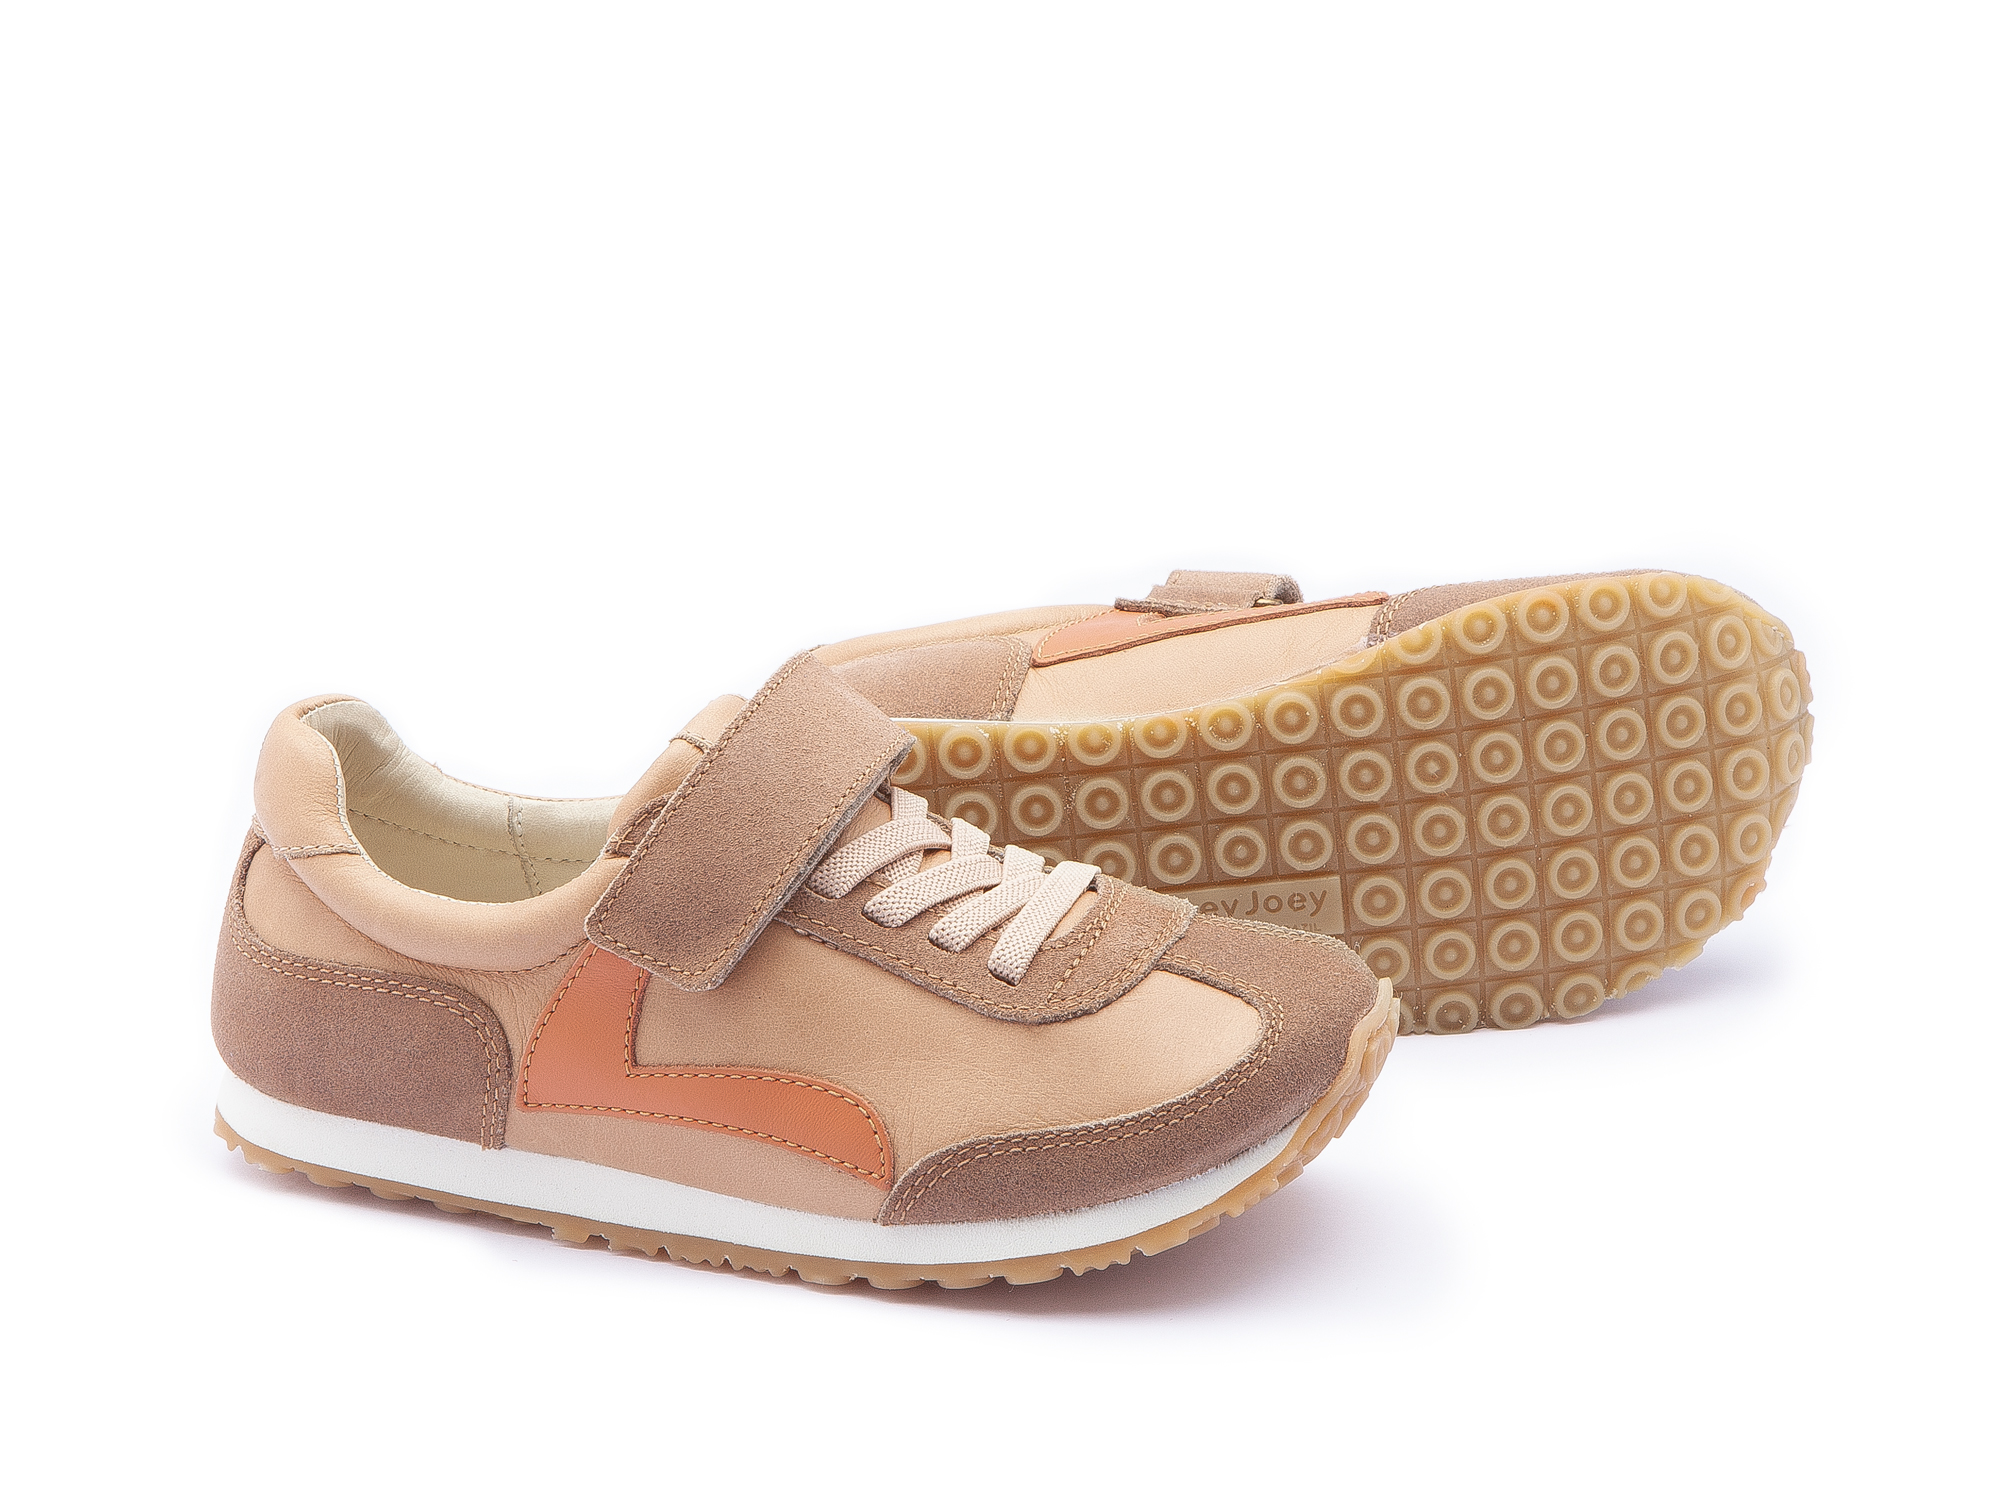 Tênis Start Sand/ Dry Tan Suede Junior 4 à 8 anos - 2